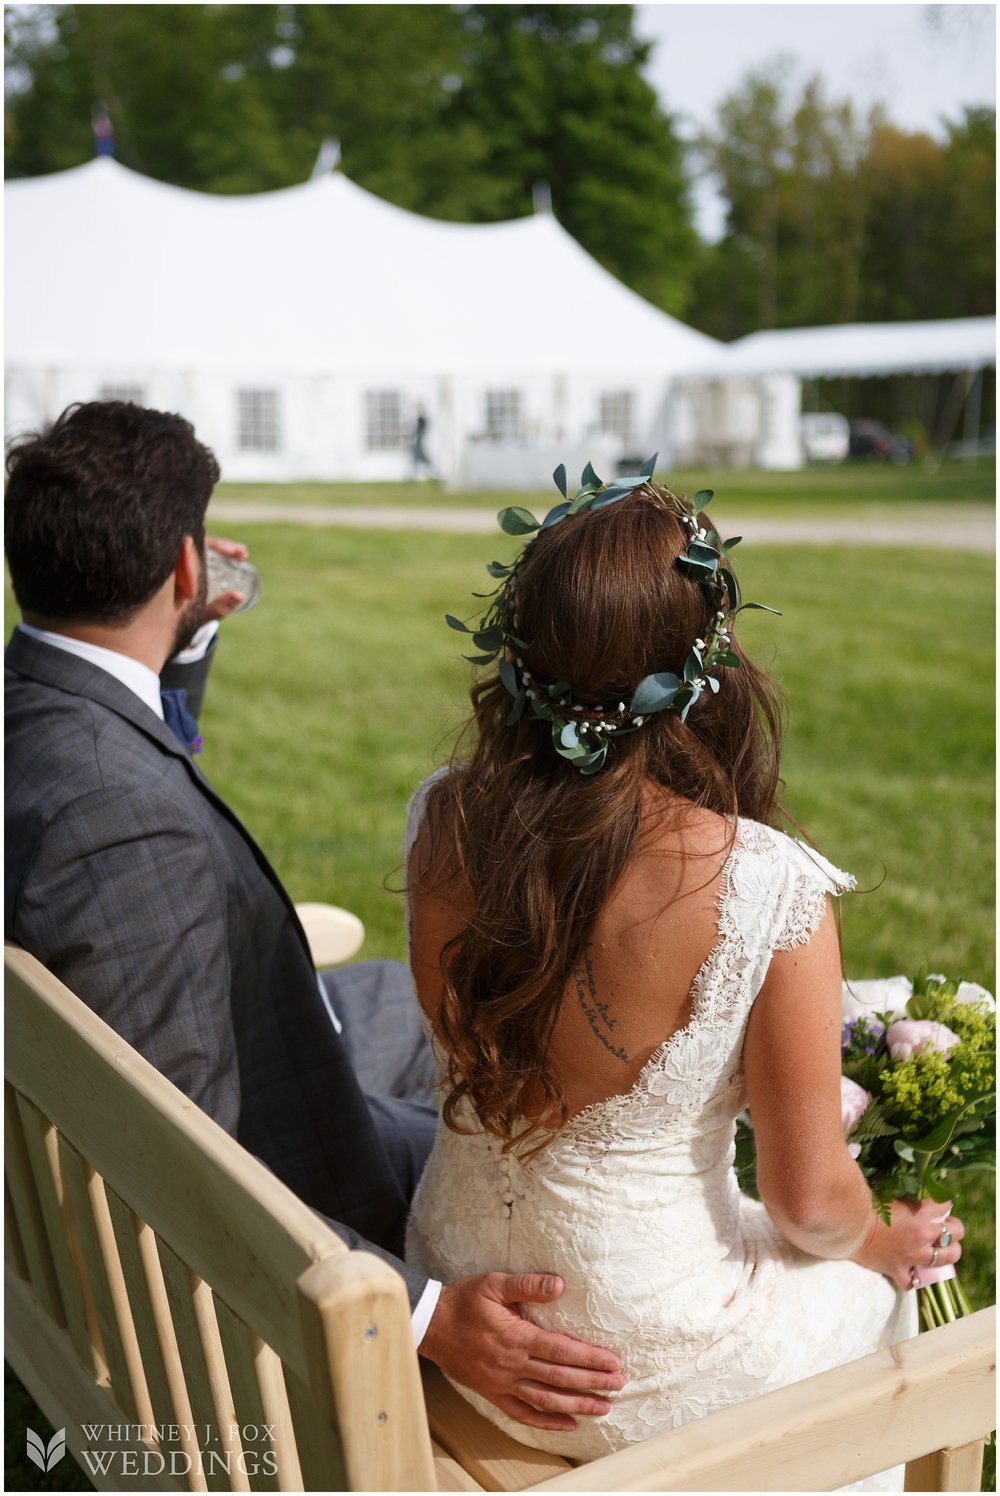 50_89_tai_josh_the_homestead_rest_be_thankful_farm_lyman_maine_photographer_whitney_j_fox_weddings_.jpg